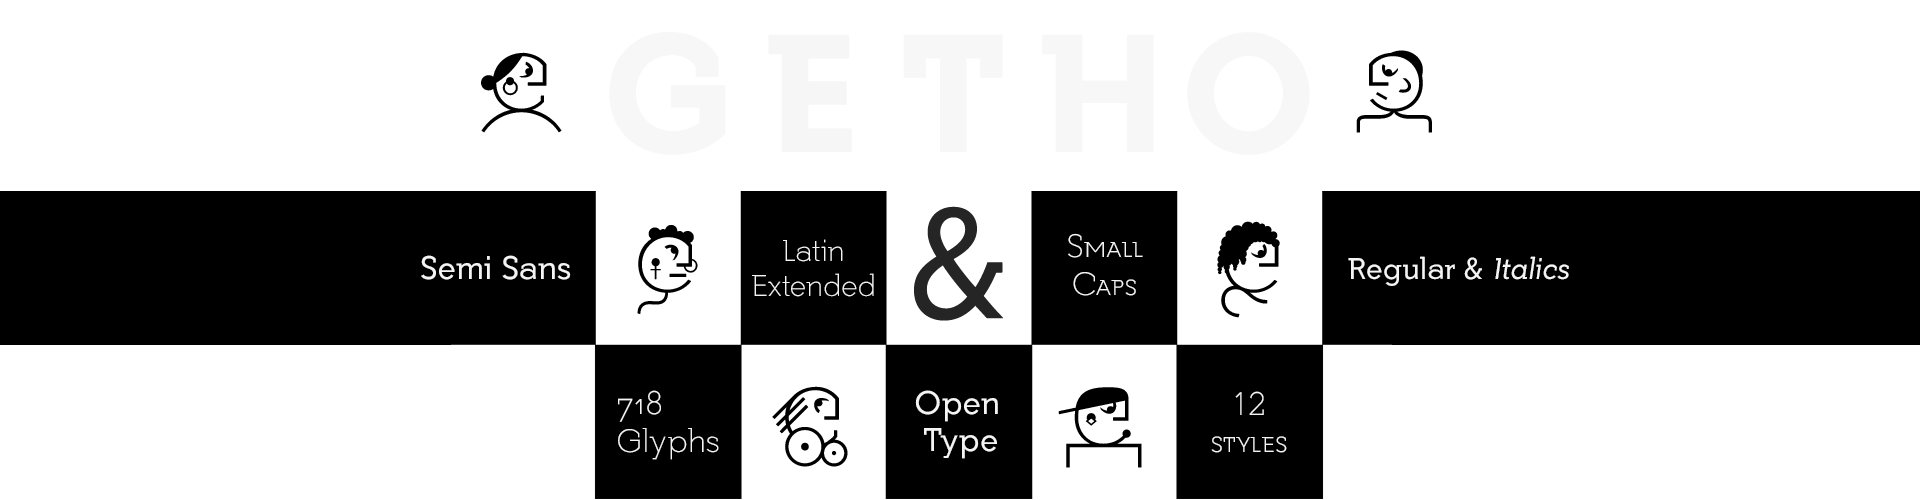 Getho Semi Sans Fonts & Small Caps Family